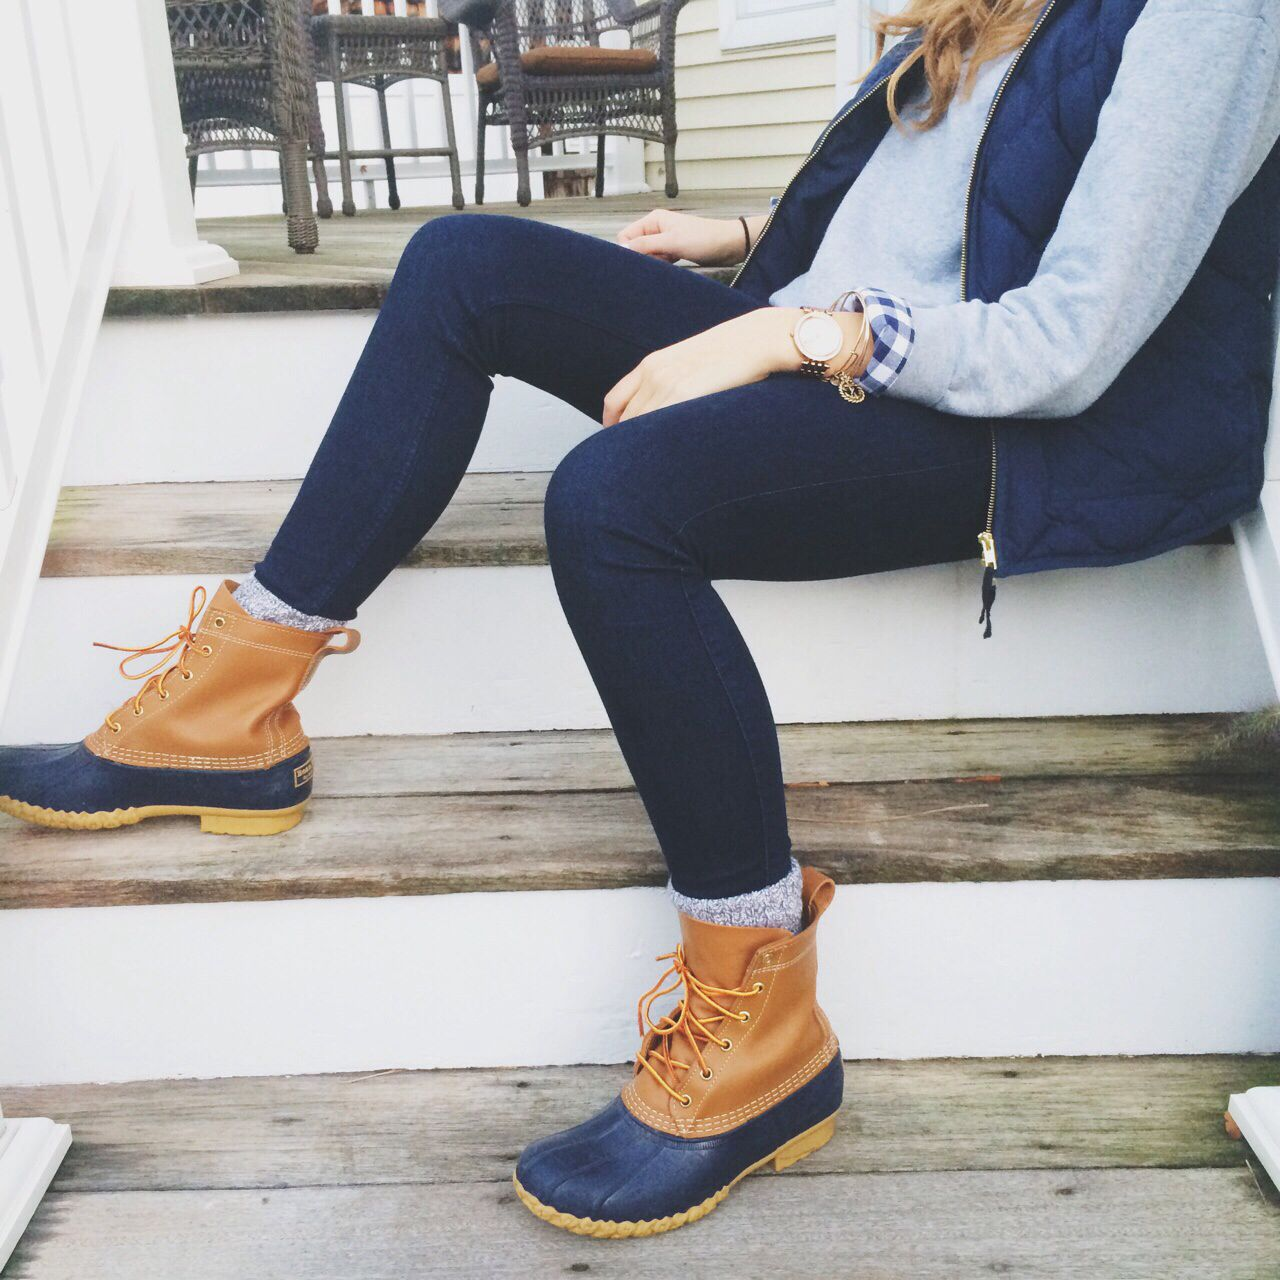 Bean Boots Camp Socks Jeans Navy Gingham Grey Sweater